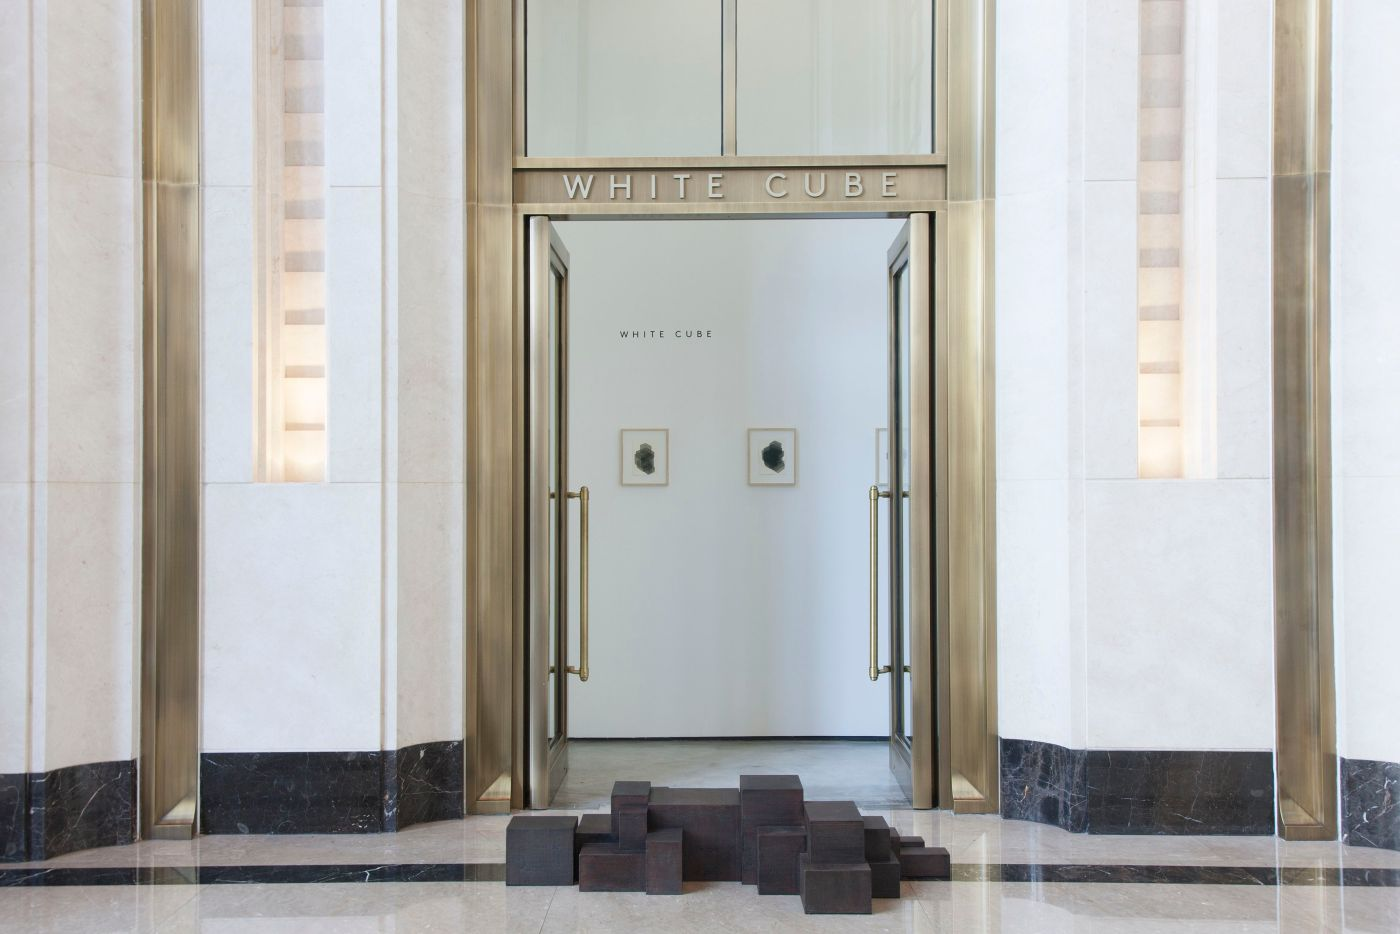 Antony Gormley States and Conditions White Cube Hong Kong 28 March - 3 May 2014 (medium res)